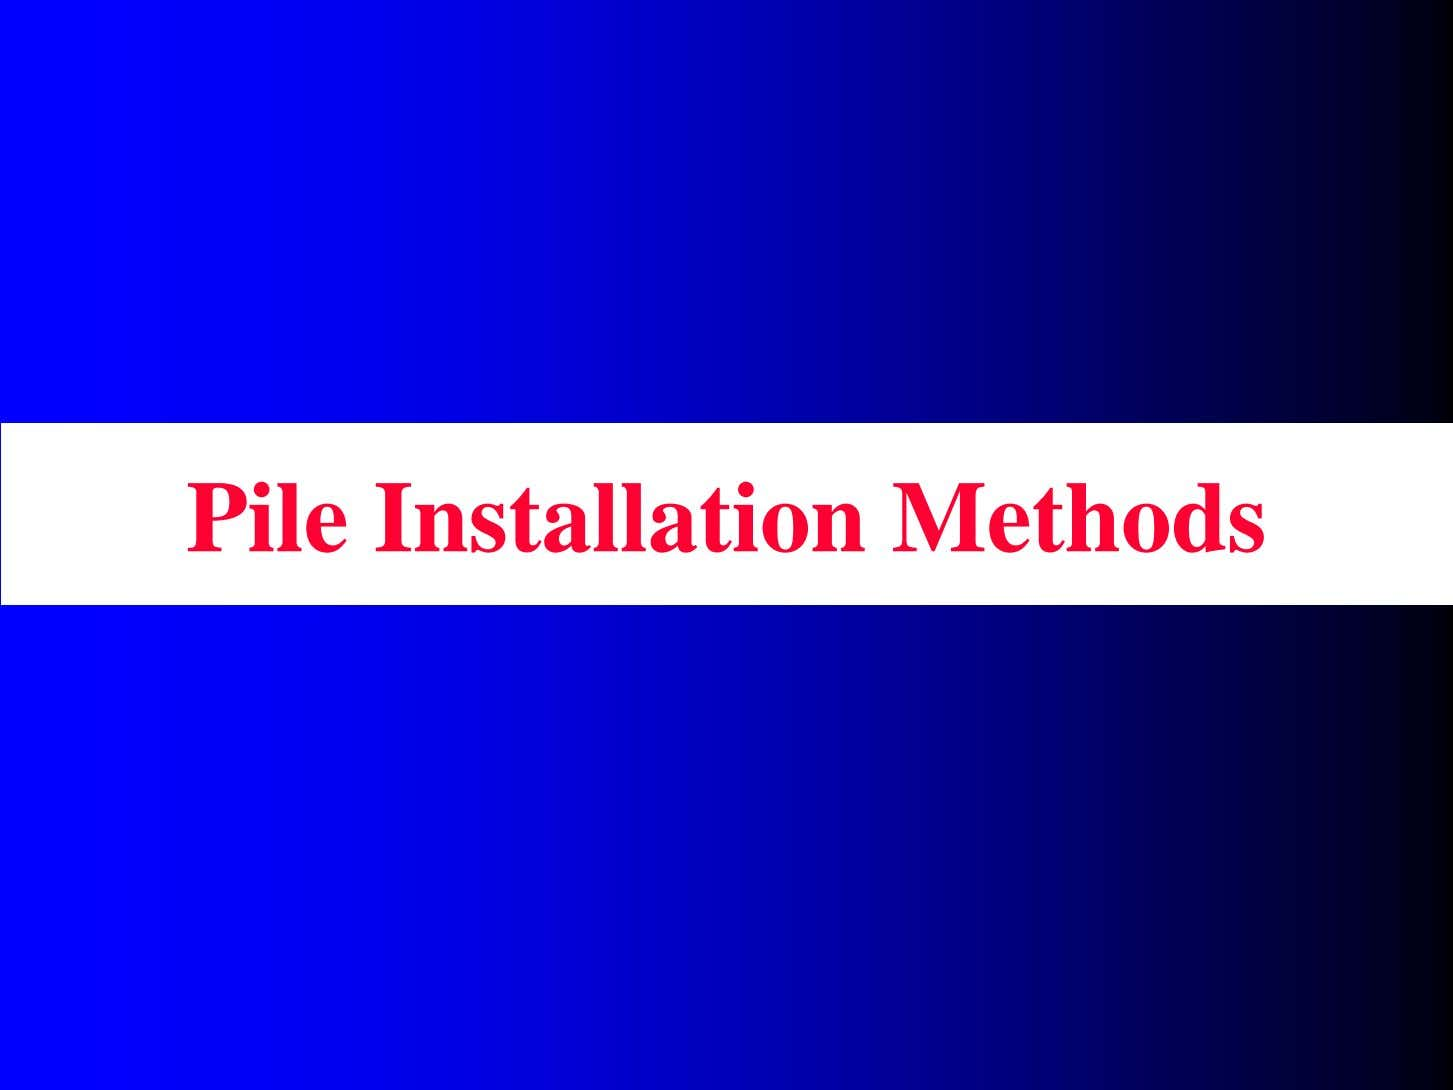 Pile Installation Methods